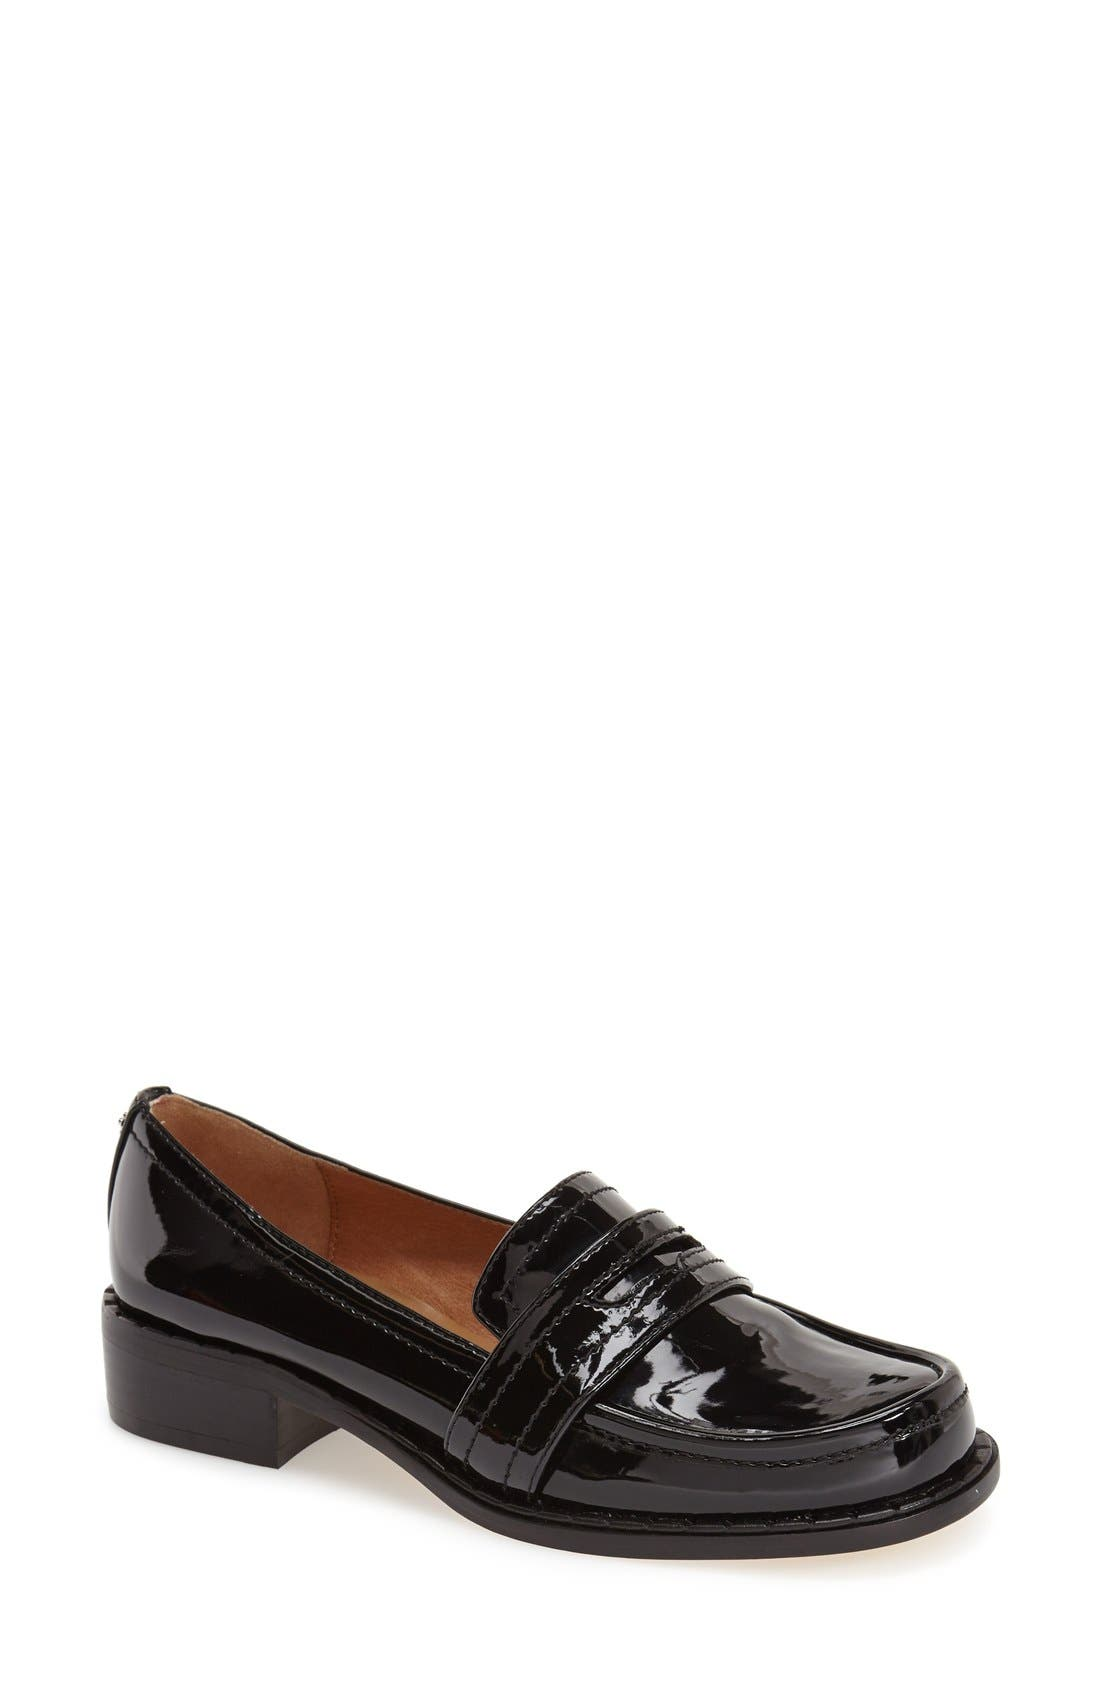 Nina Originals 'Mystique' Penny Loafer (Women)